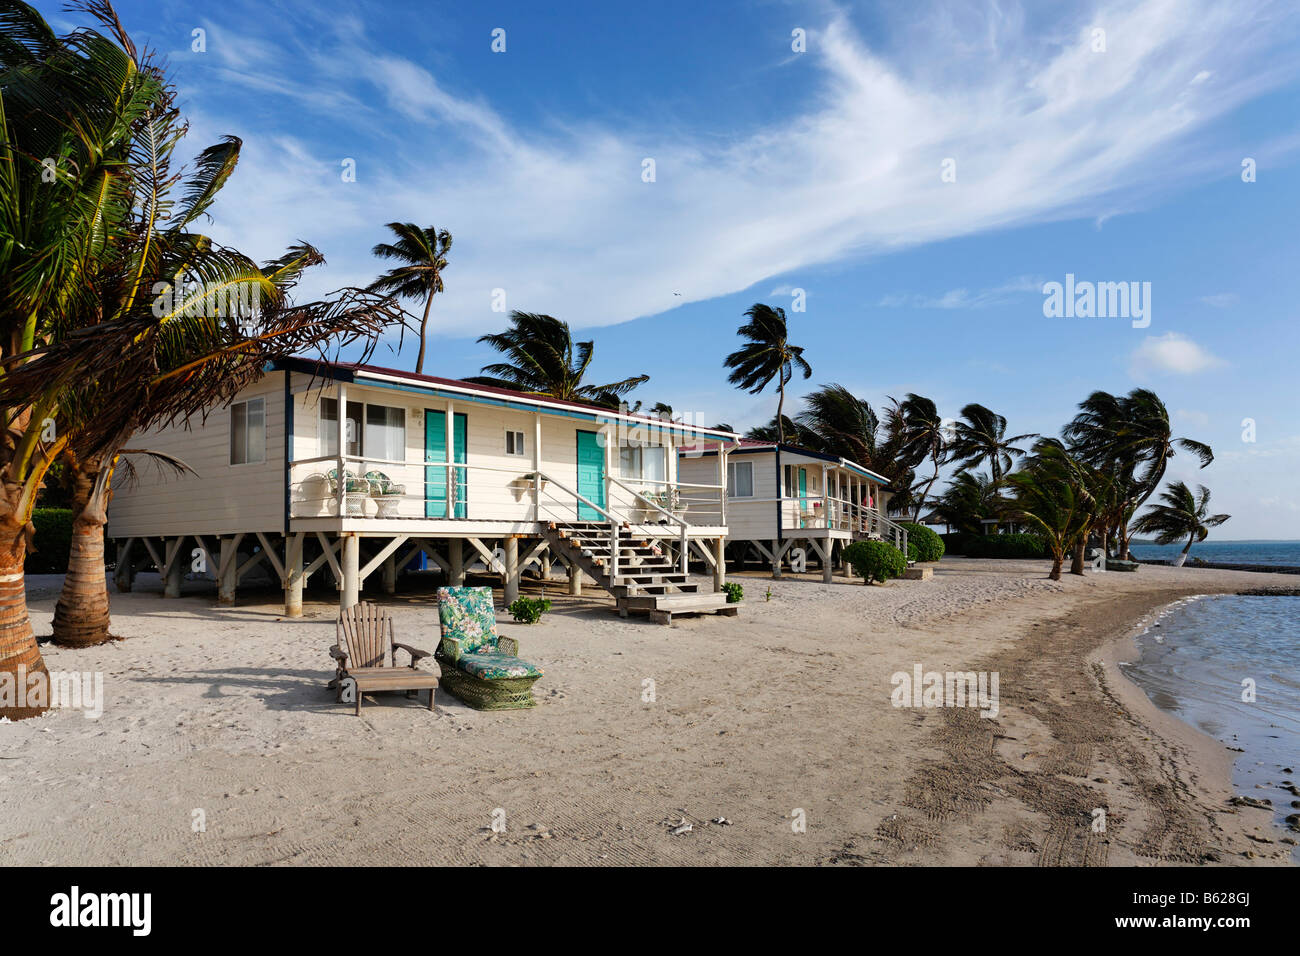 Bungalows, Turneffe Flats, Turneffe Atoll, Belize, Central America, Caribbean - Stock Image